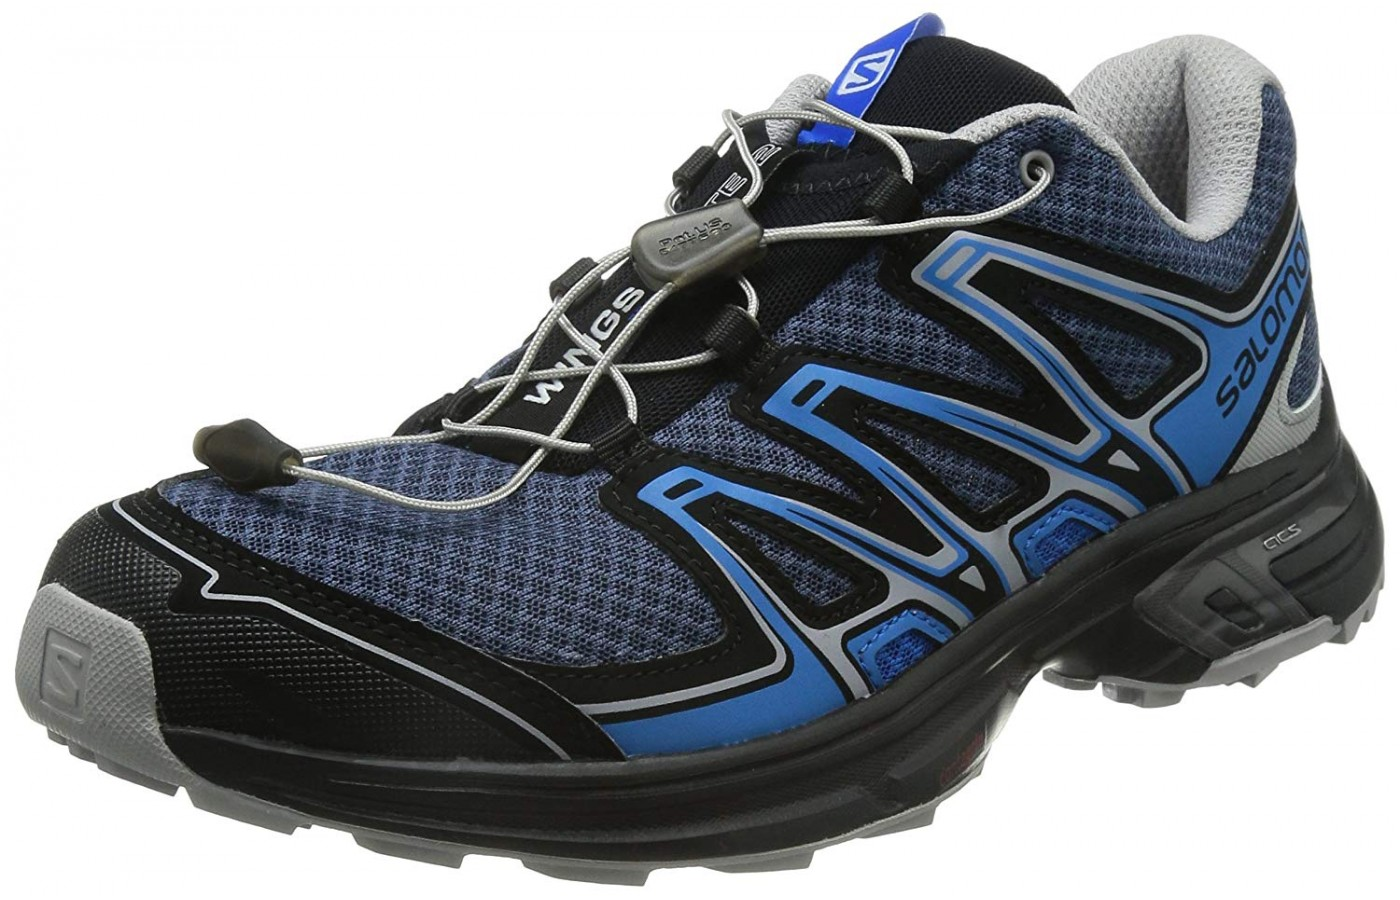 This particular running shoe was designed for downhill speed